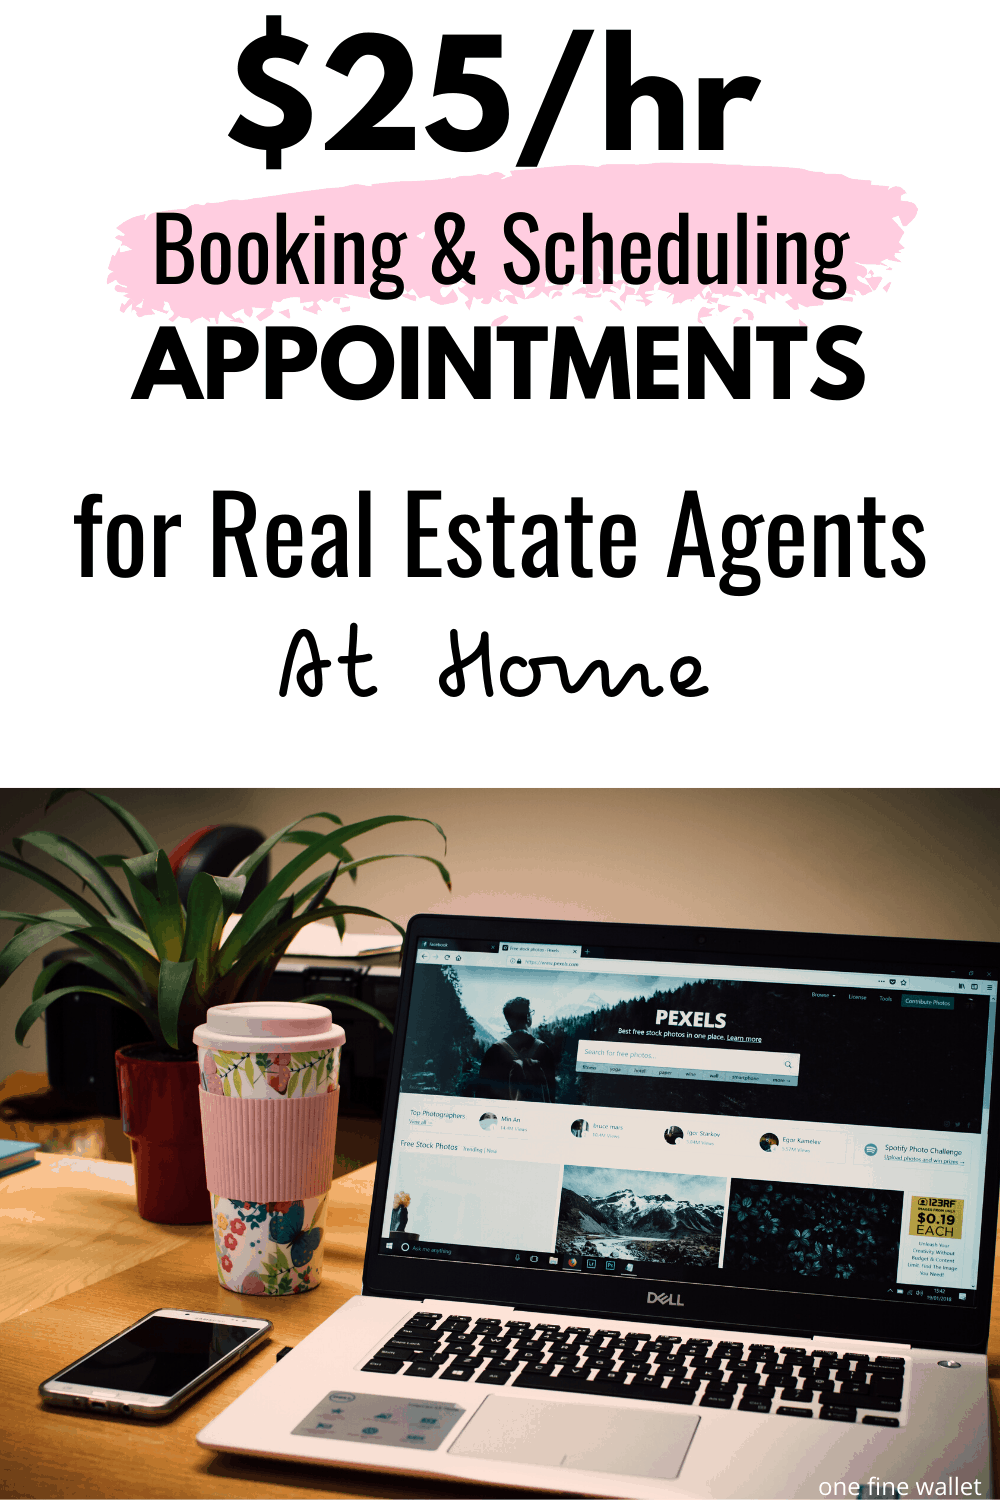 Work at home as a real estate virtual assistant book and scheduling appointments. Make money online up to $25 an hour with this side hustle